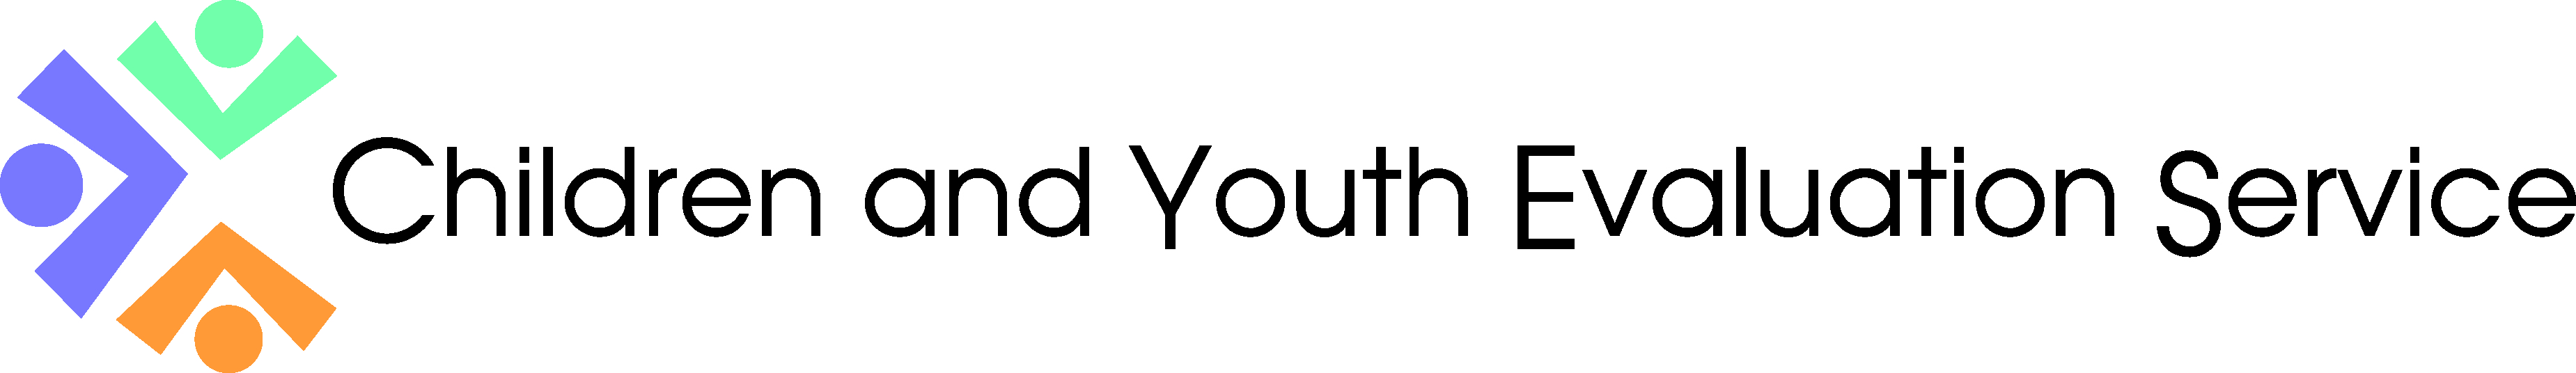 Children and Youth Evaluation Service Logo